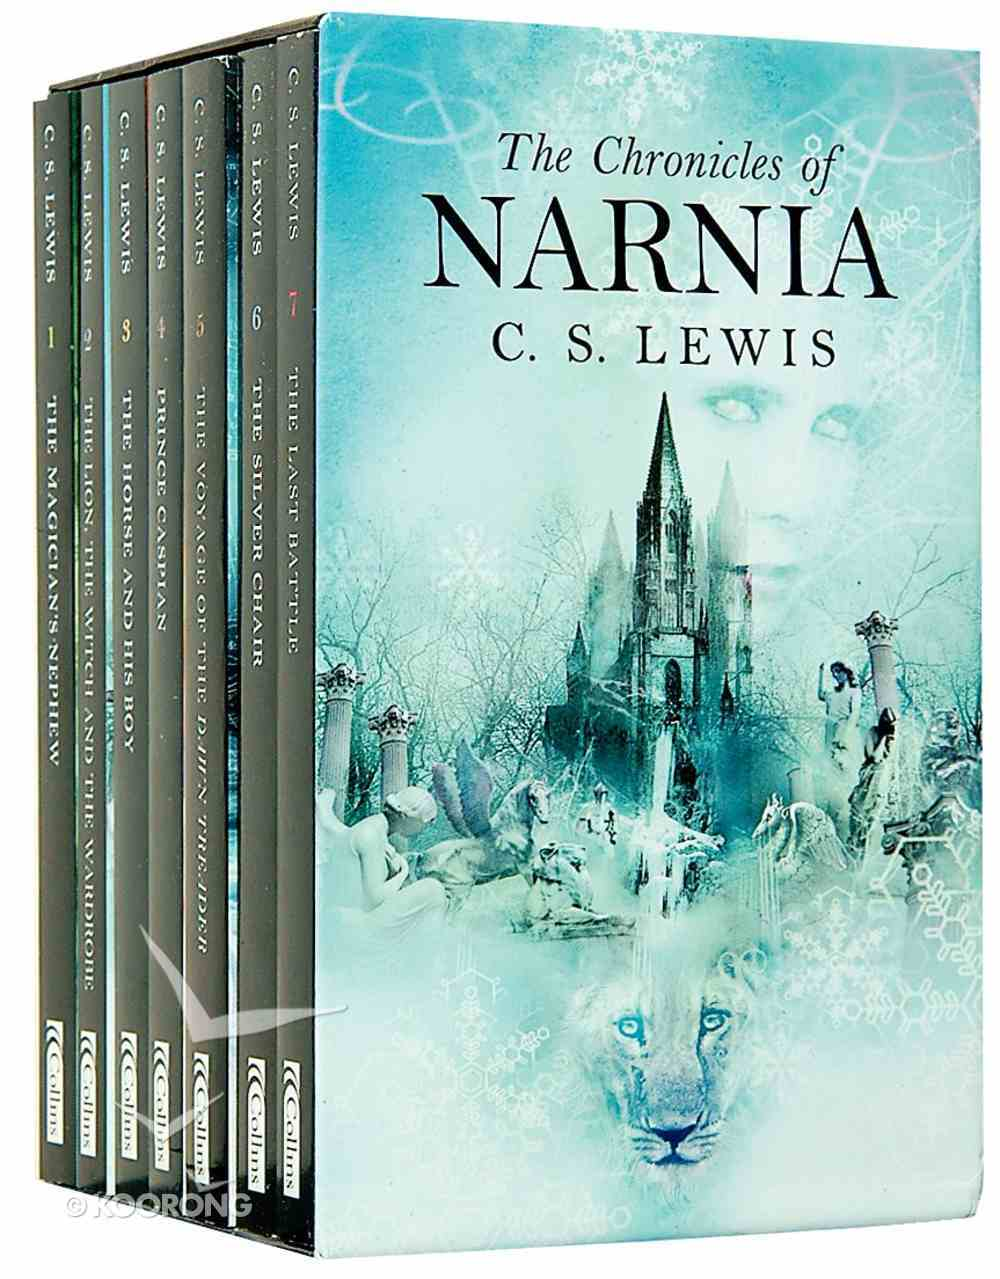 The Chronicles of Narnia (7 Titles in Slipcase) (Chronicles Of Narnia Series) Pack